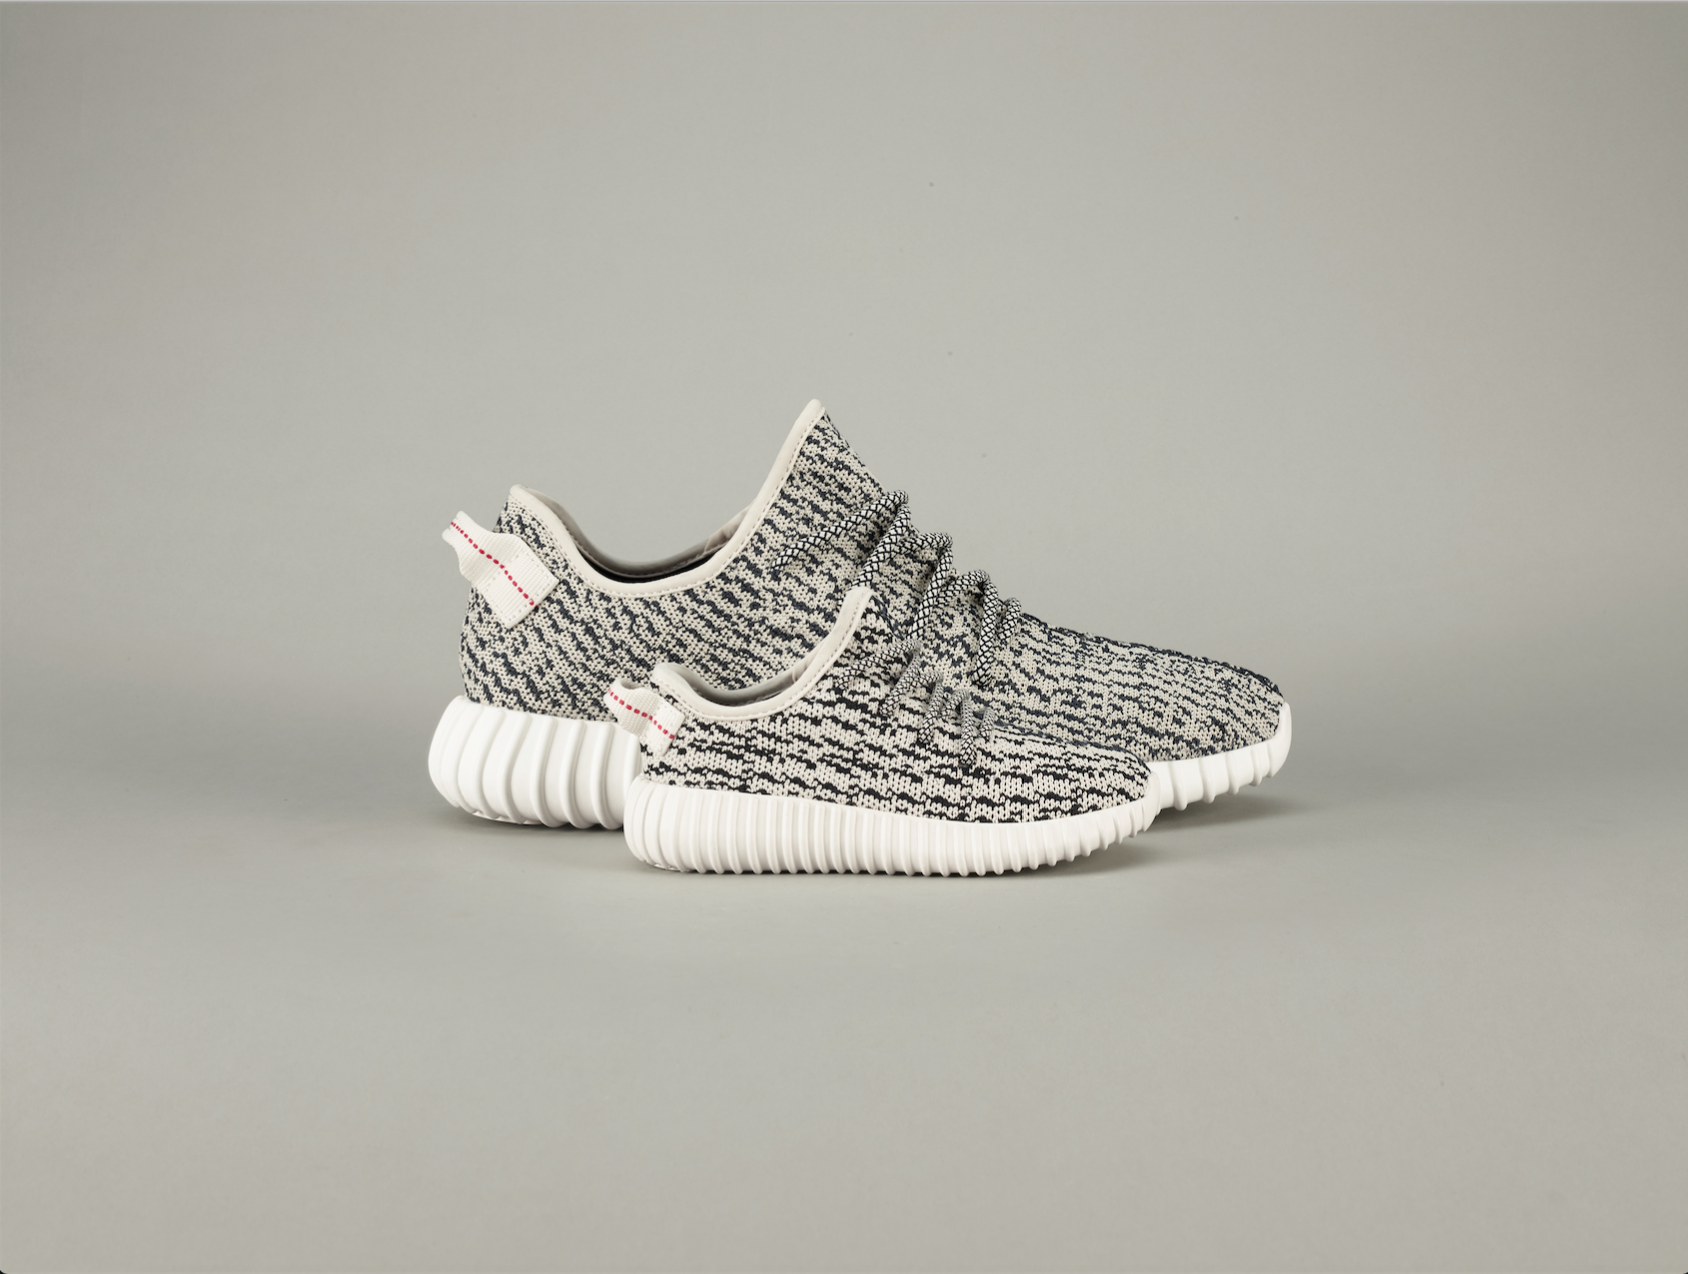 Yeezy in Toddler and Infant Sizes